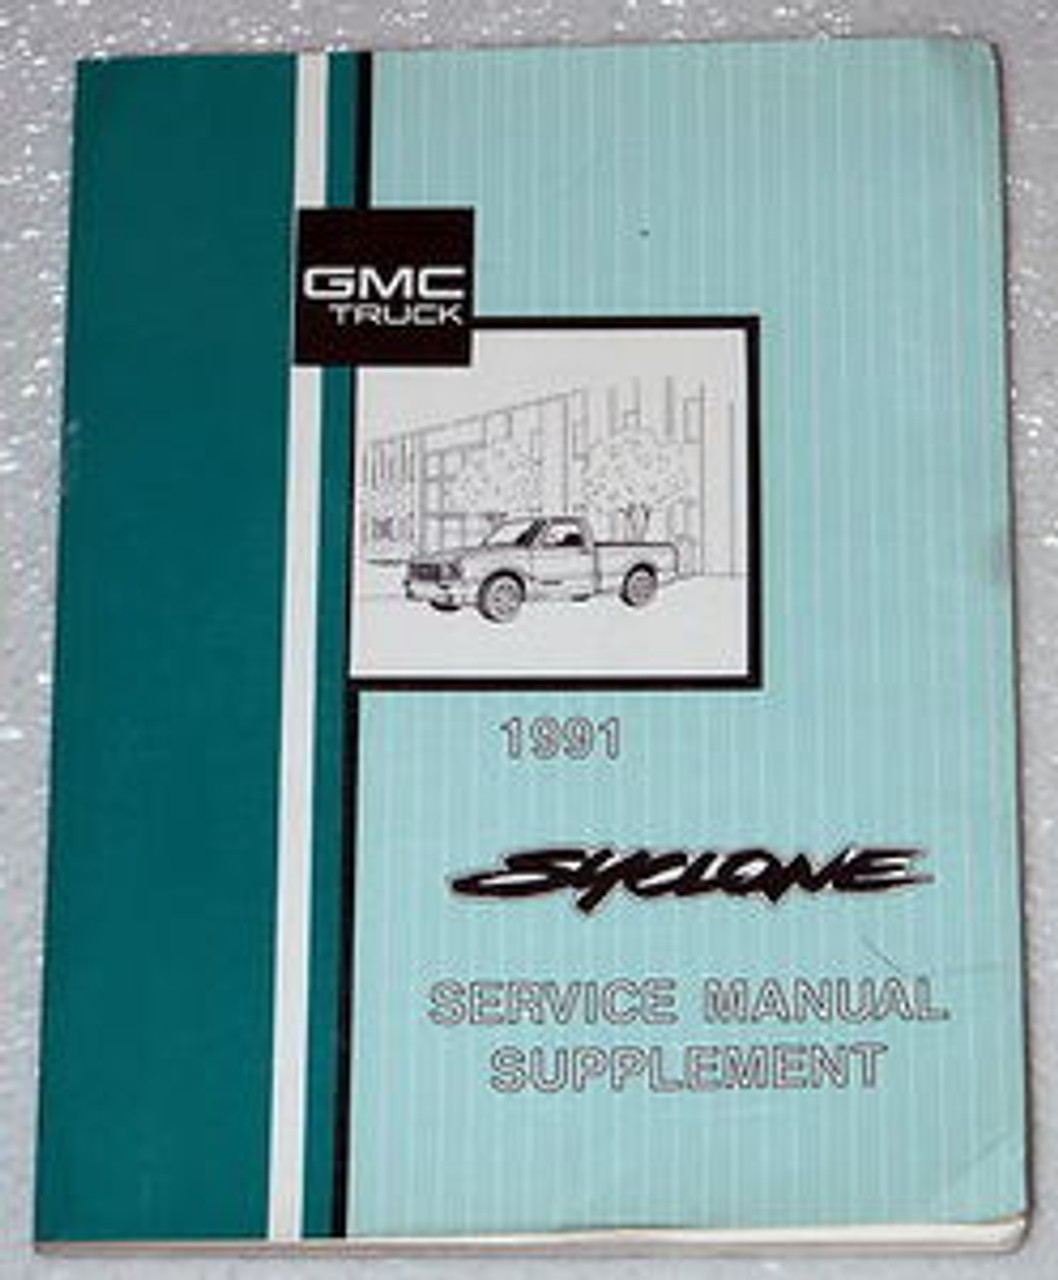 1991 gmc c k sierra pickup wiring diagram manual 1991 gmc syclone pick up truck factory service manual supplement  1991 gmc syclone pick up truck factory